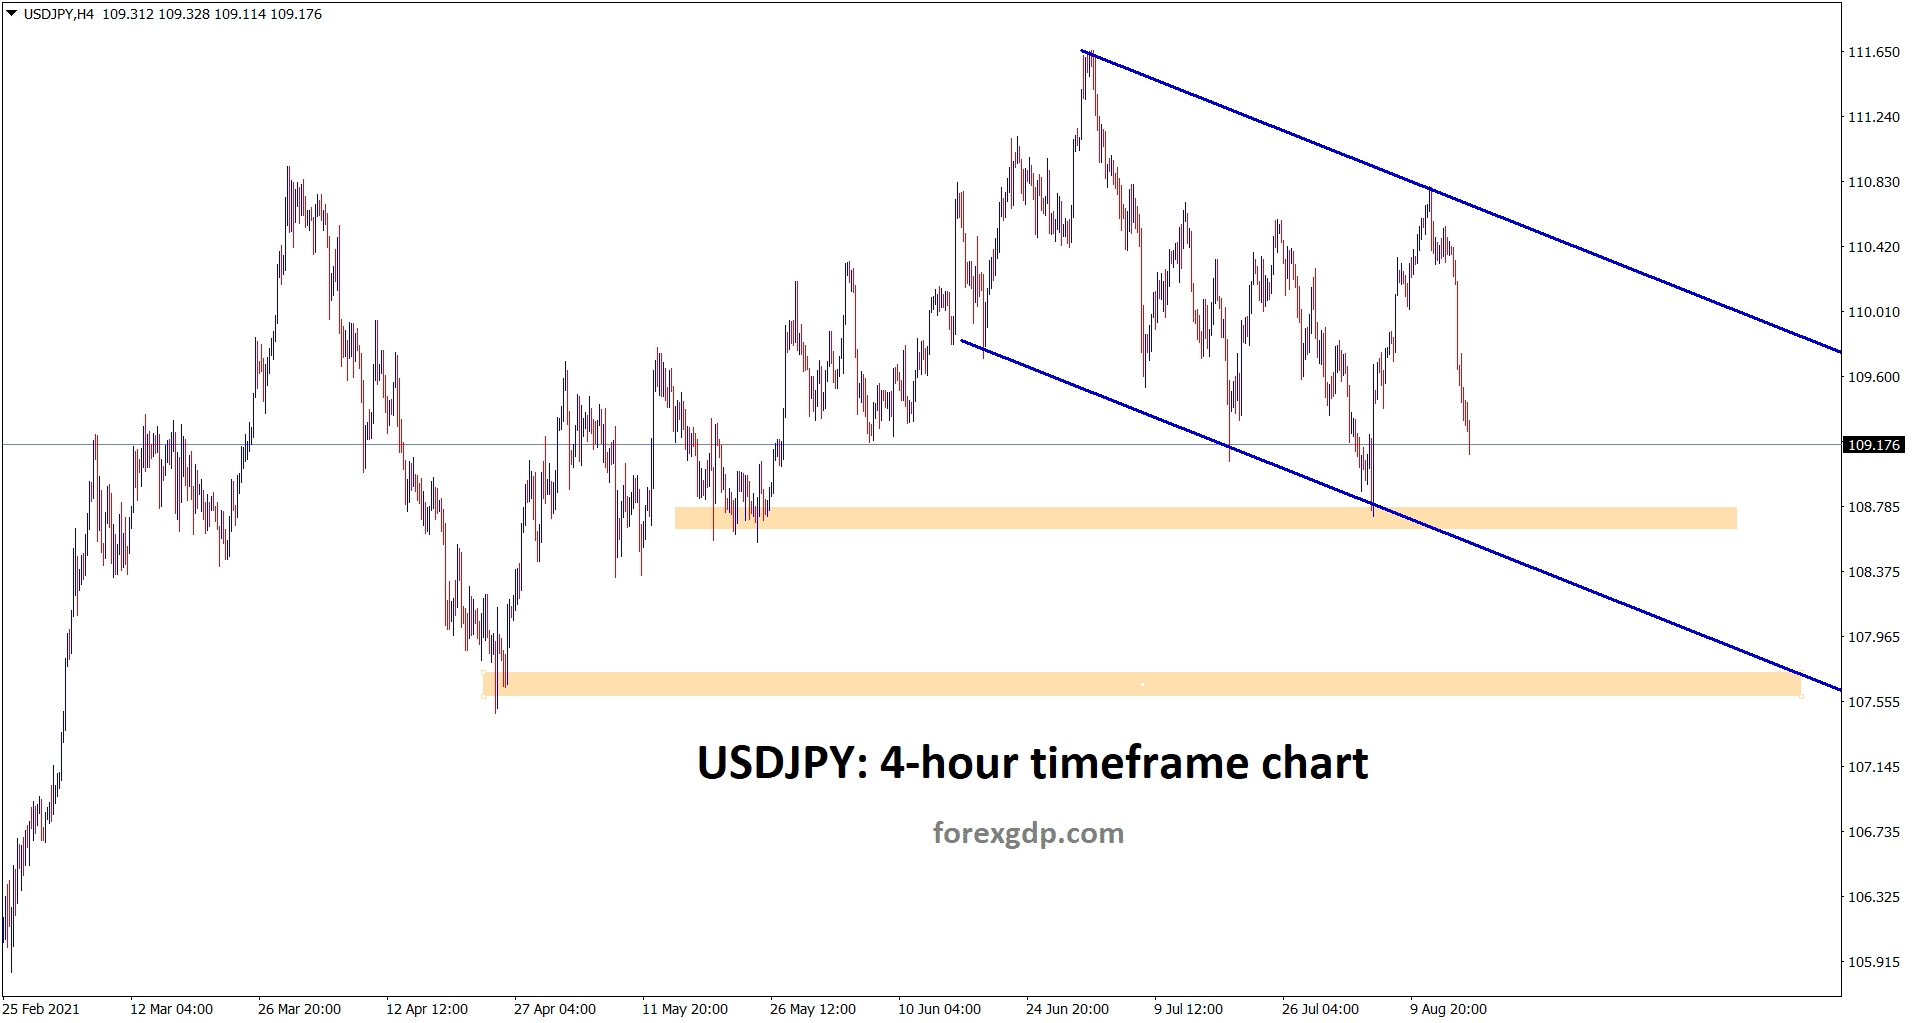 USDJPY is falling down continously in a descending channel range